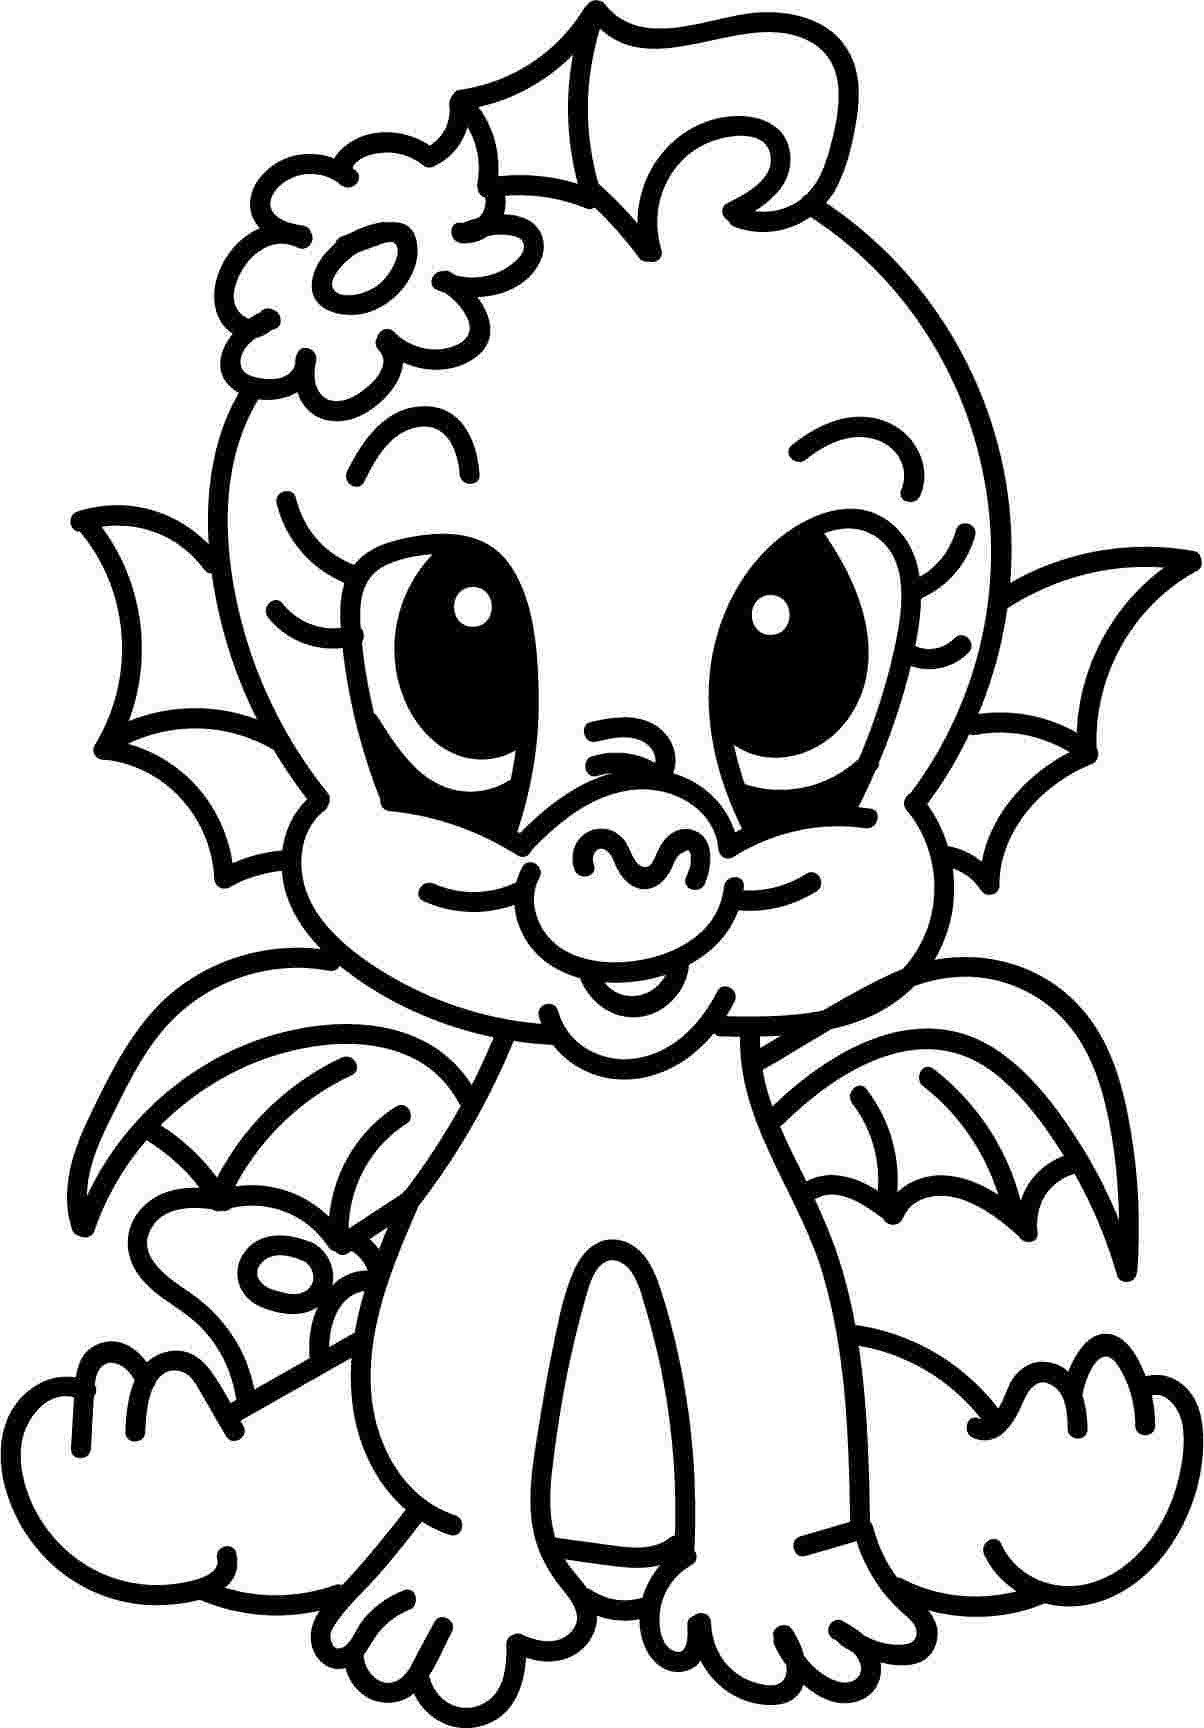 pictures of dragons for kids cool dragons drawing at getdrawings free download dragons kids for pictures of